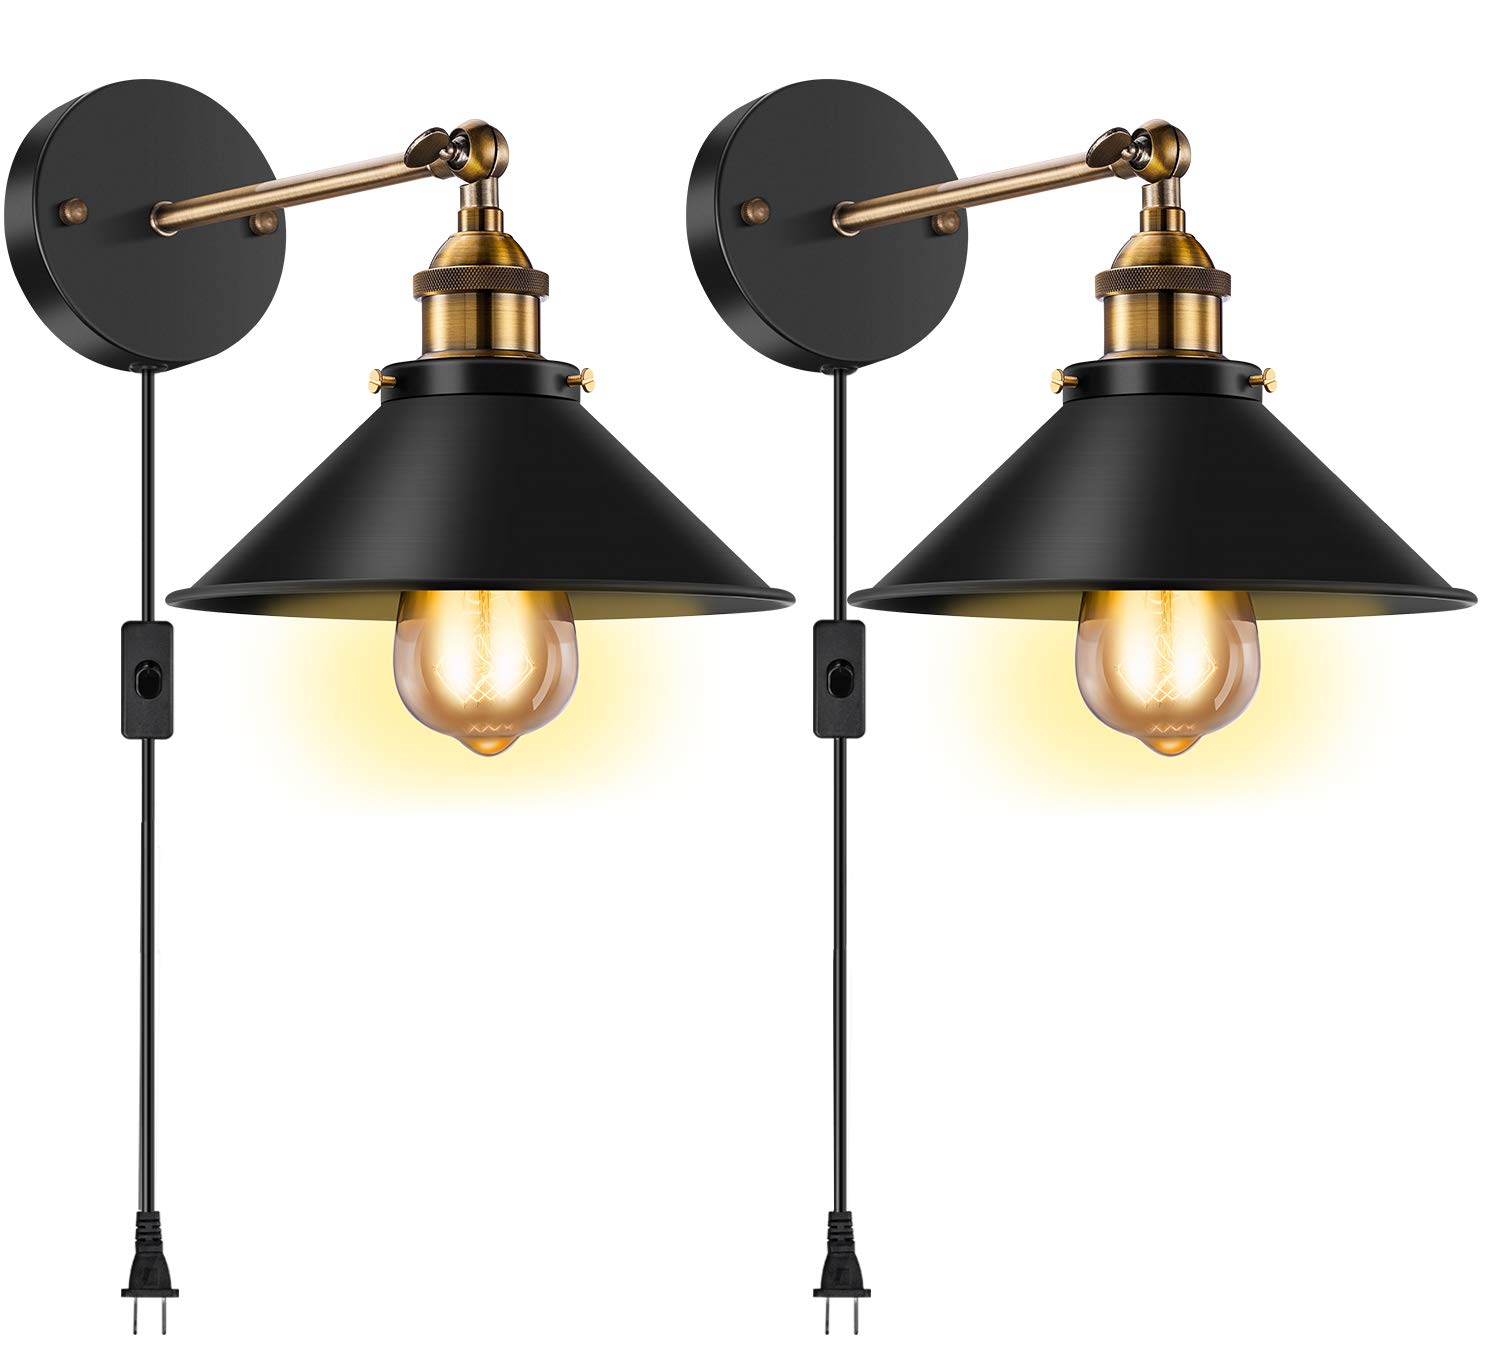 Licperron Vintage Style Wall Sconce Plug in E26 E27 Edison Antique 240 Degree Adjustable Industrial Wall Light with On/Off Switch for Restaurants Bathroom Dining Room Kitchen Bedroom 2 Pack(Hardwired)